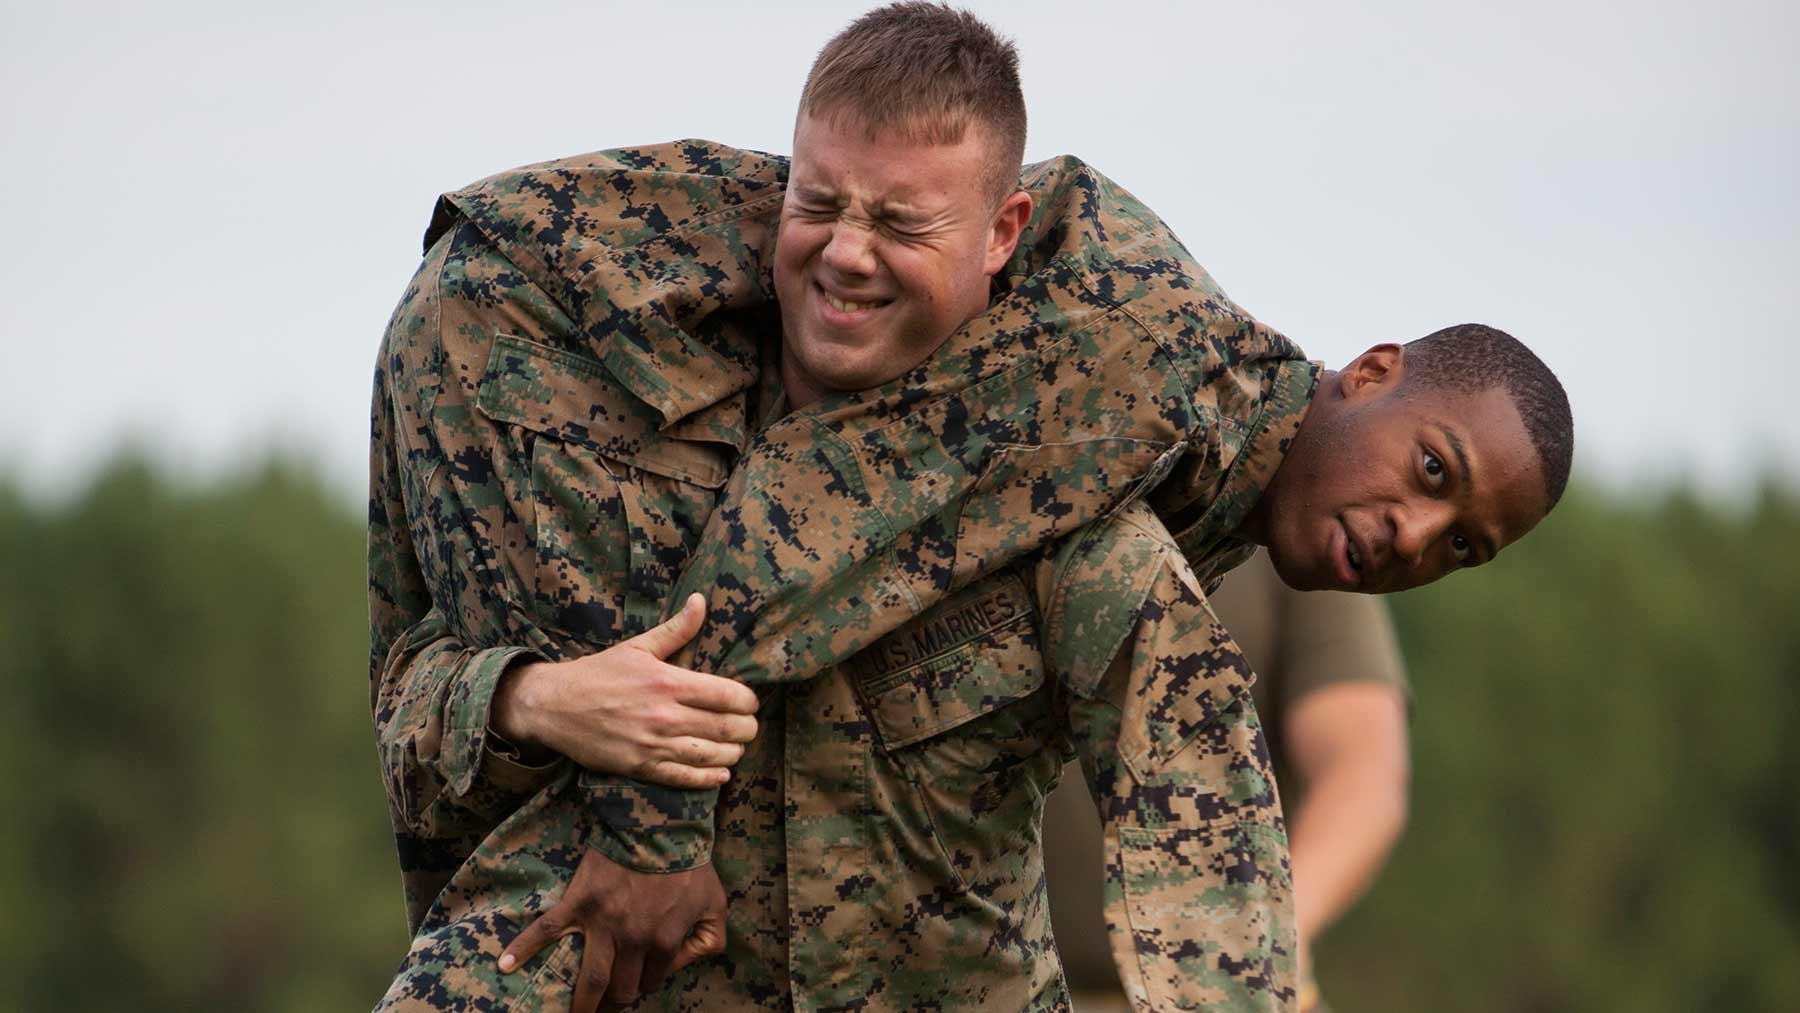 The fireman's carry is an effective way to carry injured Marines.